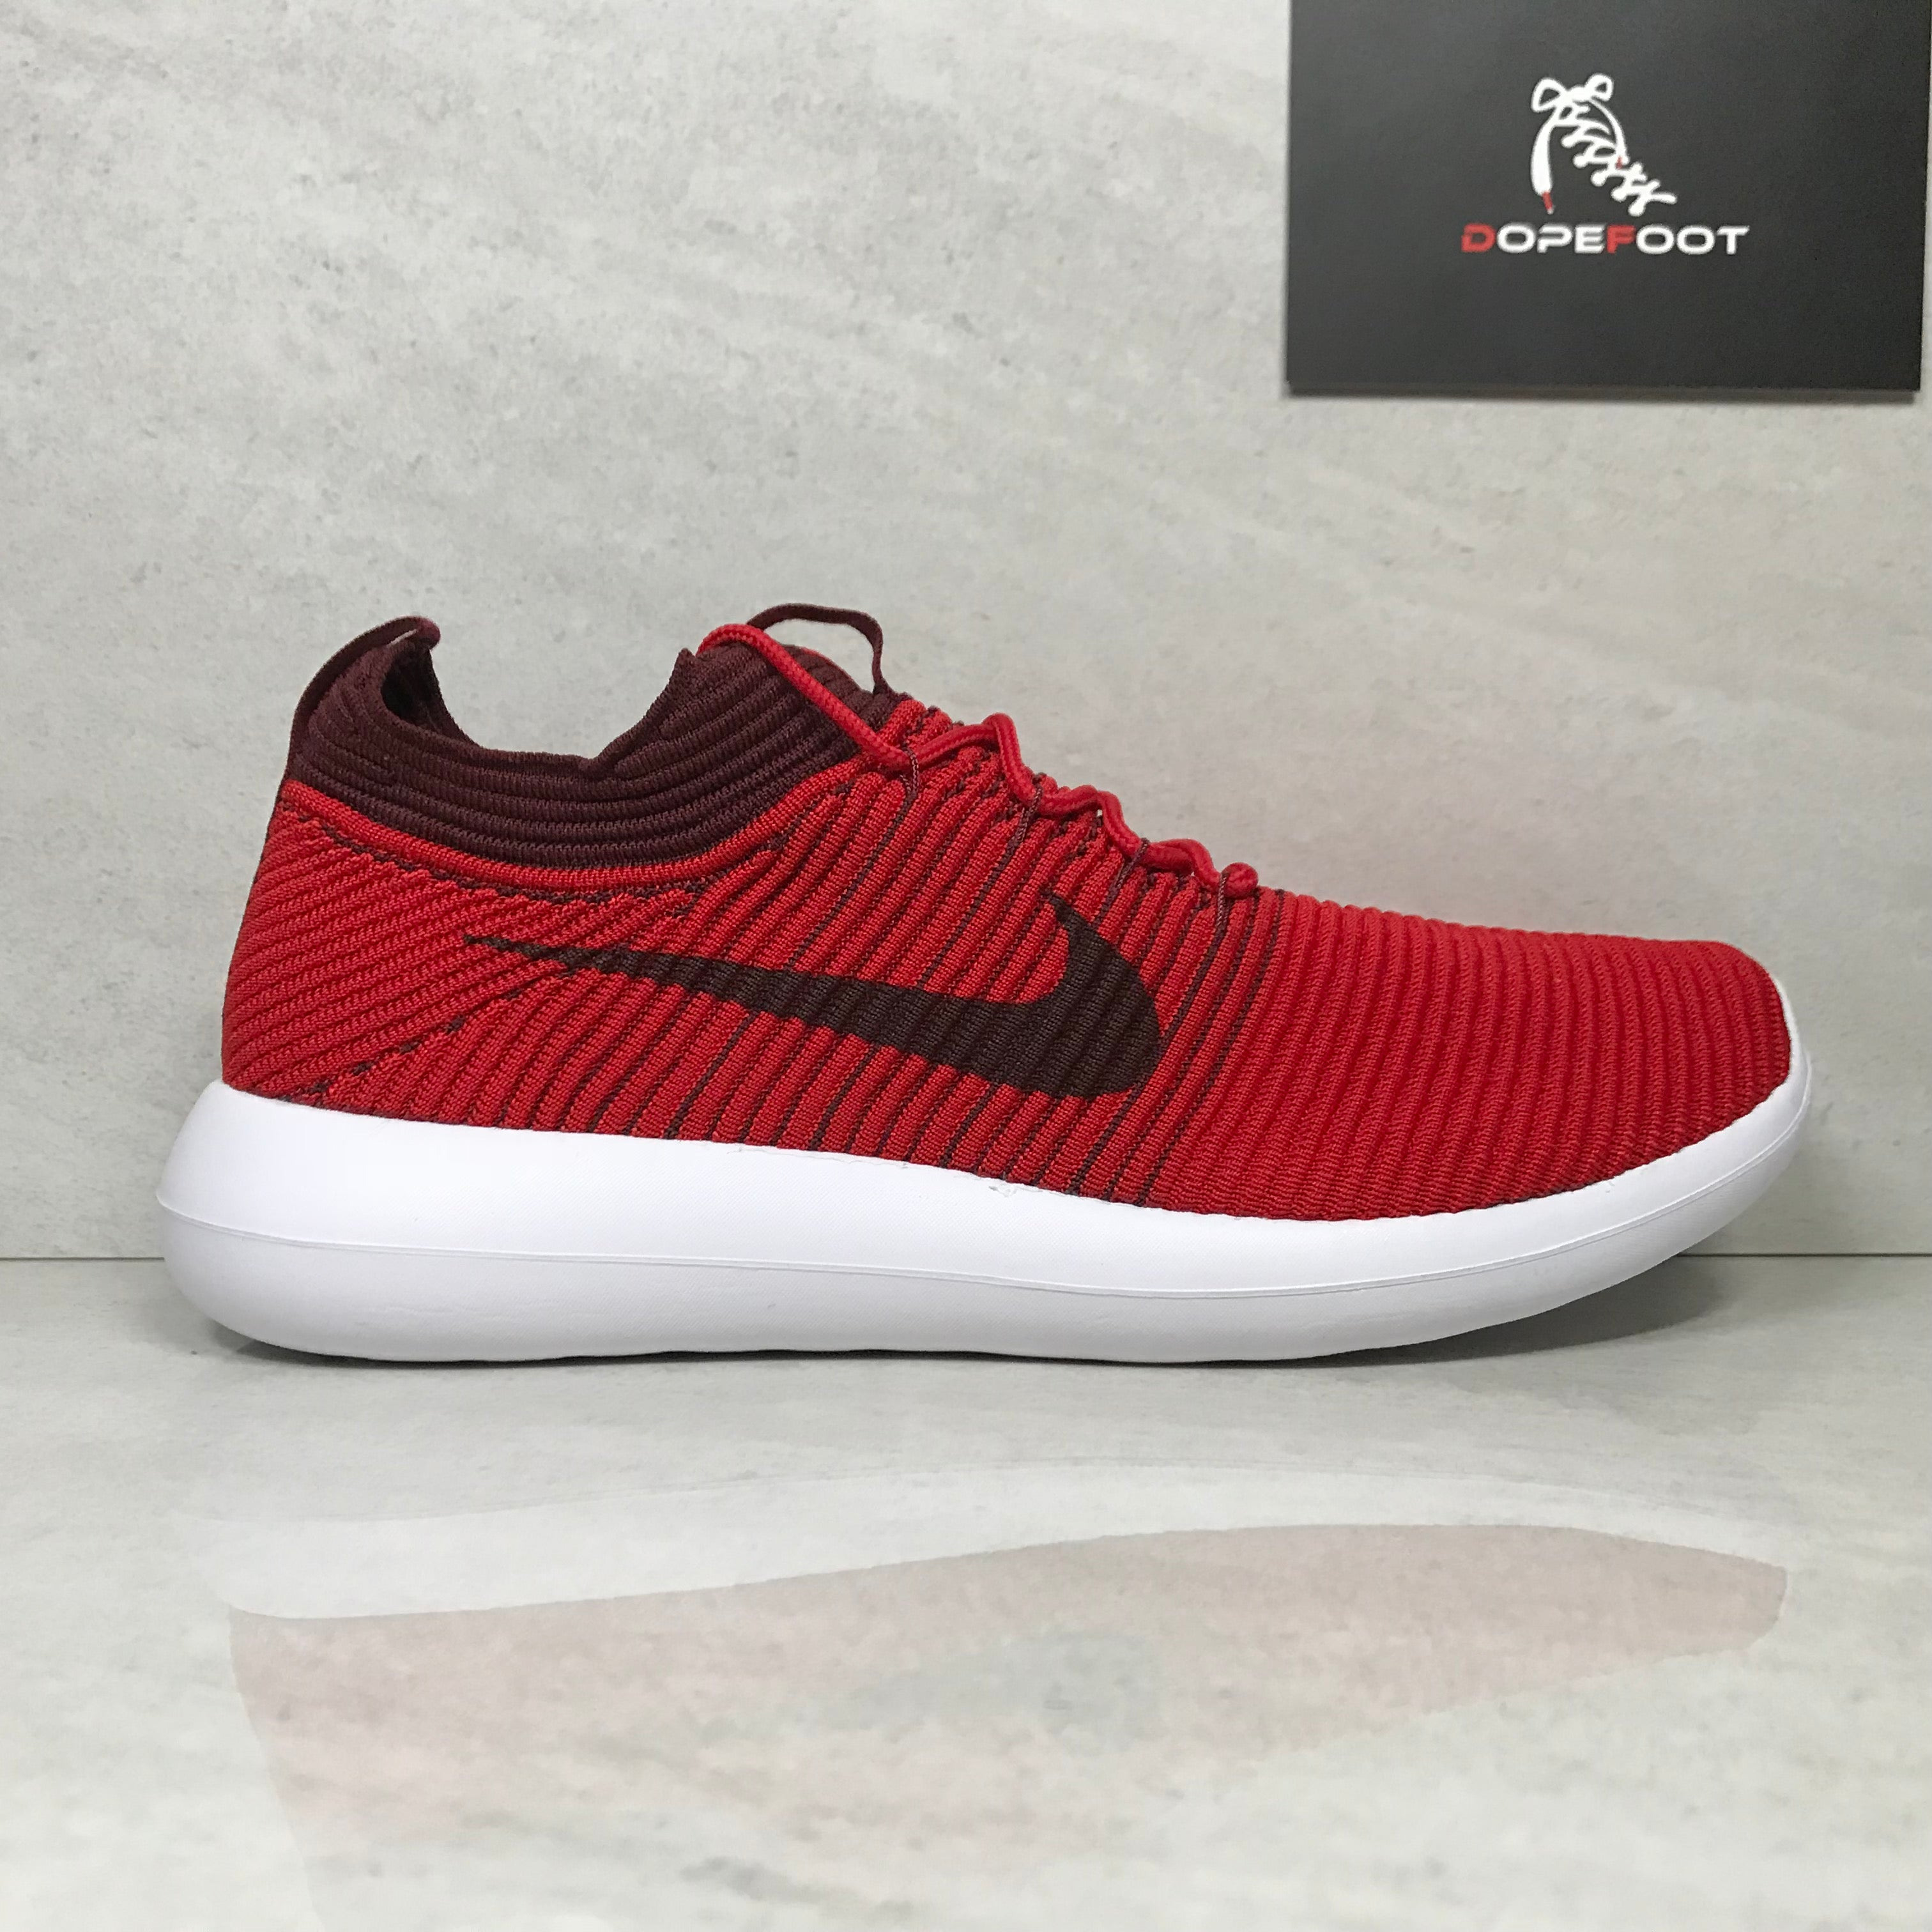 reputable site e1a52 f4fe7 DS Nike Roshe Flyknit v2 Red Size 9.5/Size 10/Size 11/Size 12 -